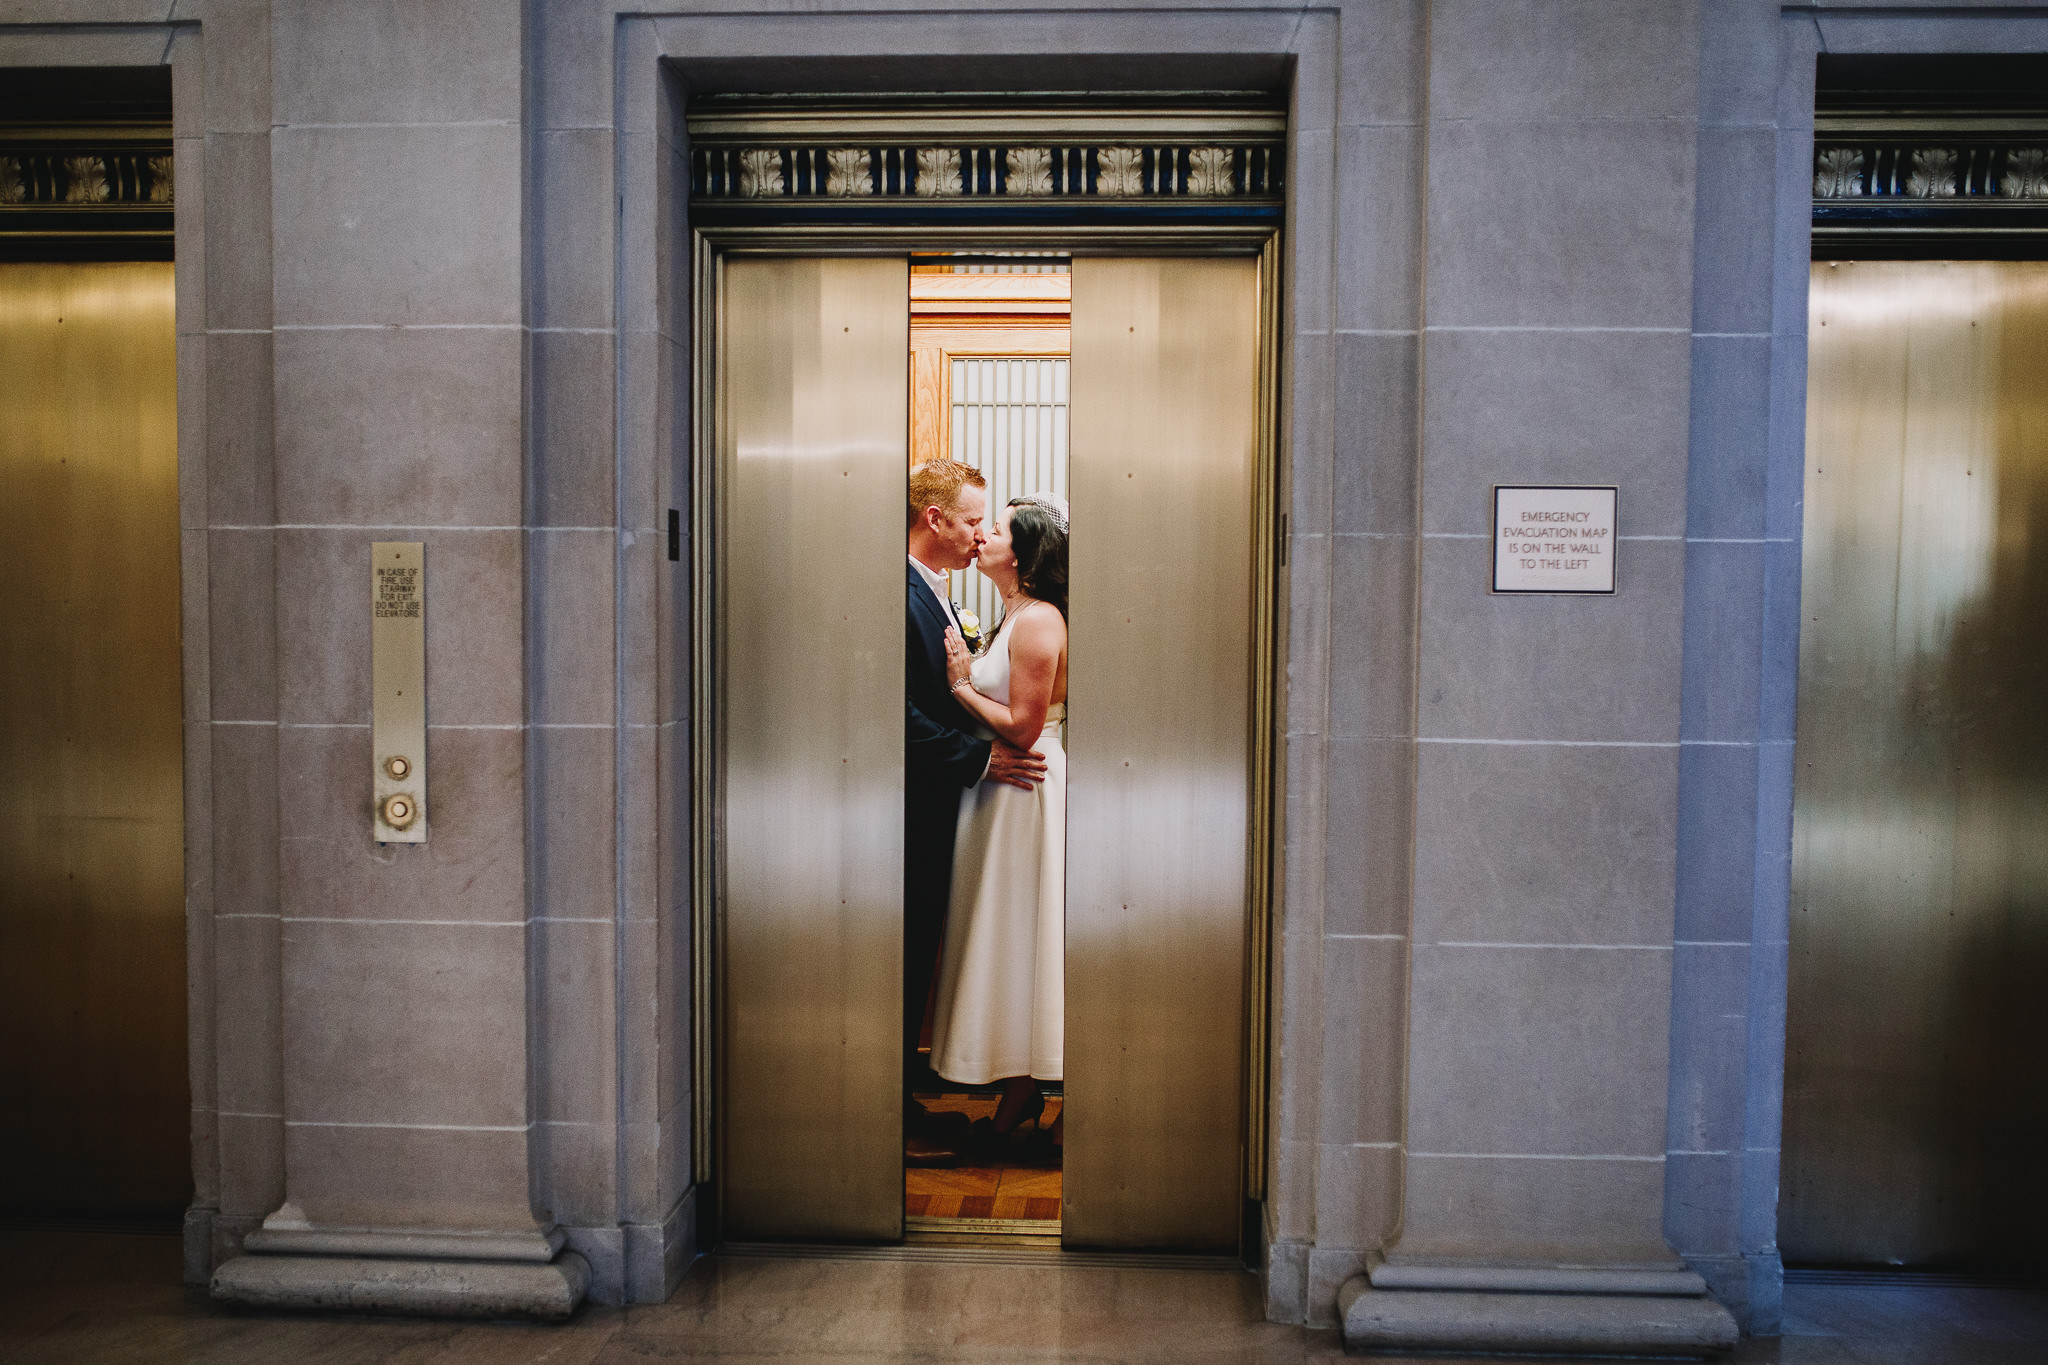 Archer Inspired Photography SF City Hall Elopement Wedding Lifestyle Documentary Affordable Photographer-185.jpg